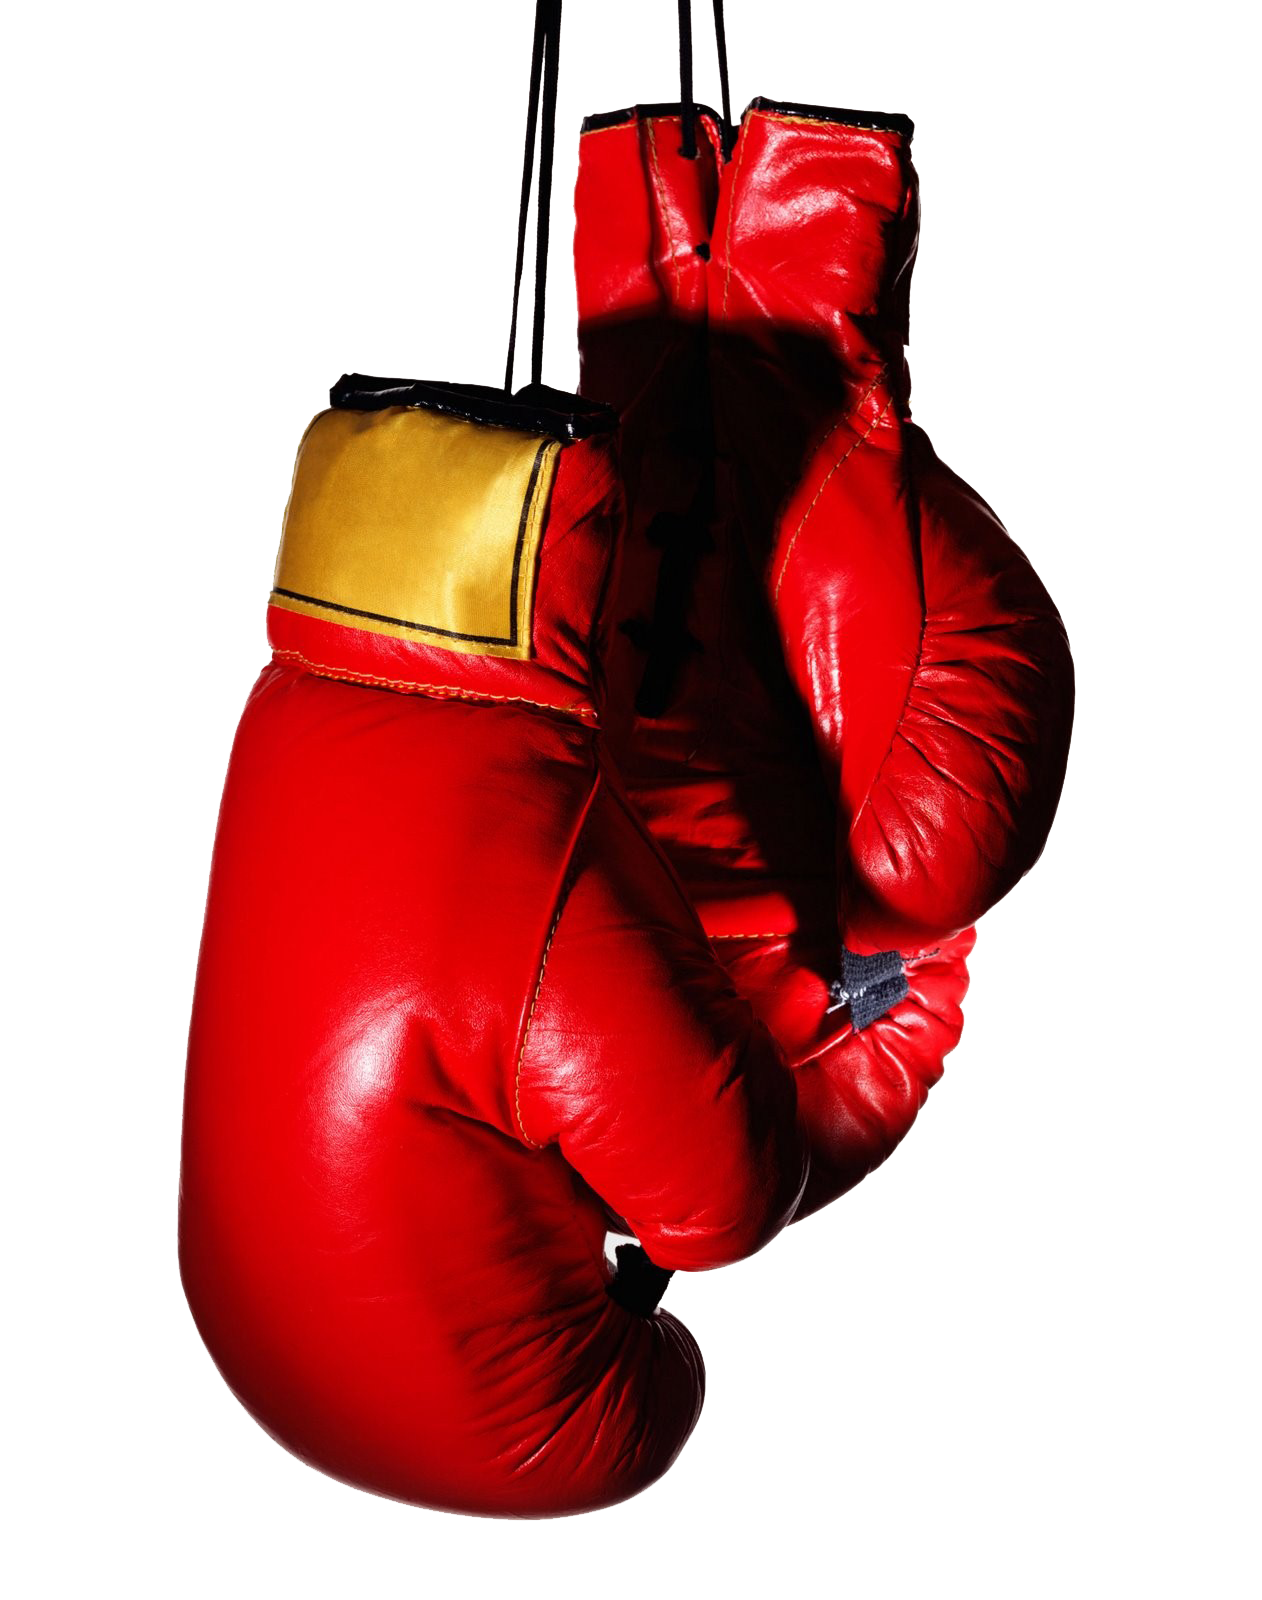 download boxing gloves transparent image hq png image freepngimg Red Fox Graphics red fox clip art outline vector